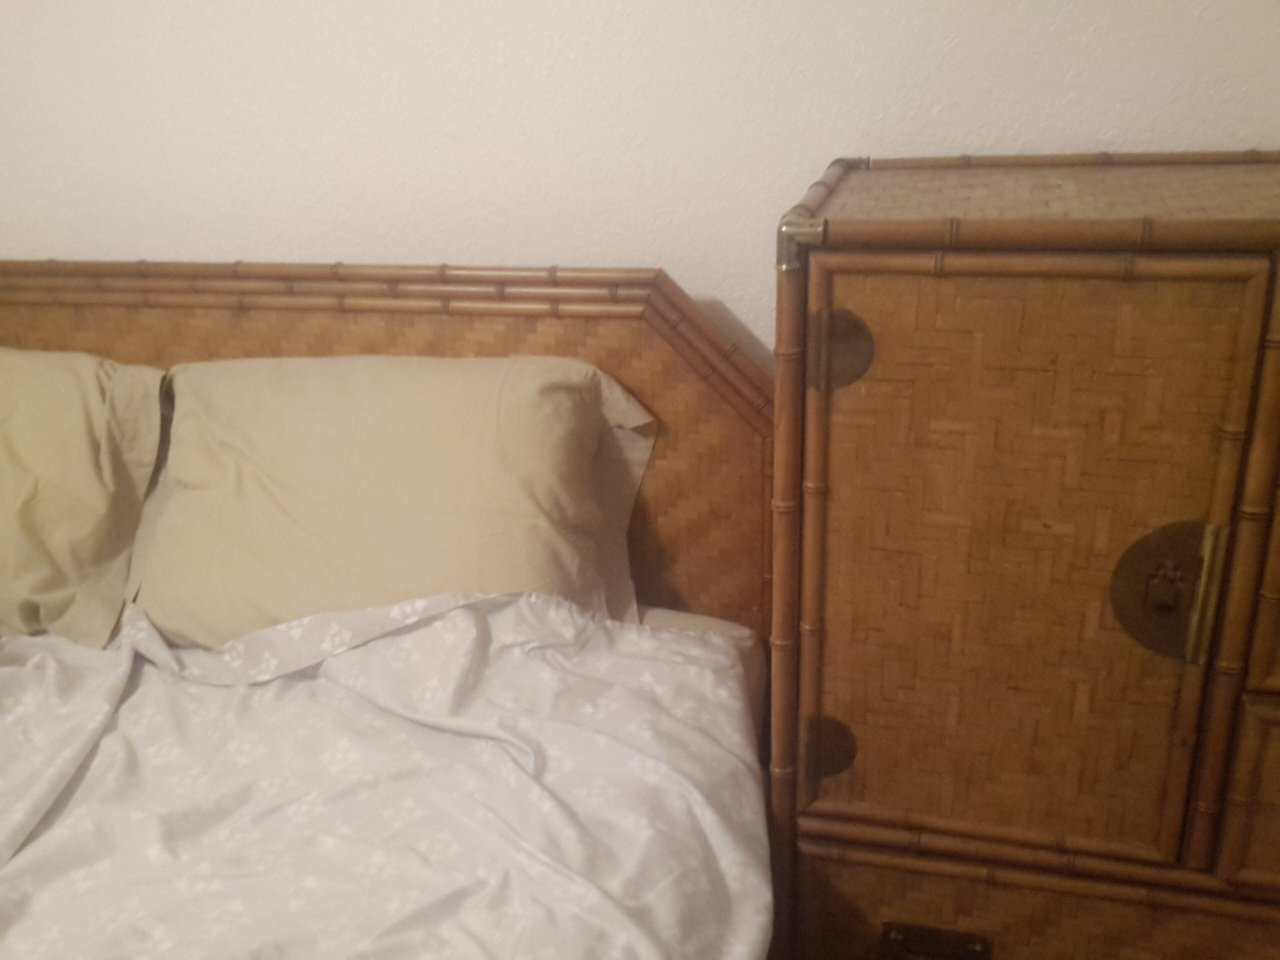 Superb I Have A Dixie Furniture Bamboo Rattan Bedroom Set, Long Dresser, Tall  Dresser, 2 End Tables U0026 Headboard. I Was Wondering Of Its Value Number On  The Back Of ...